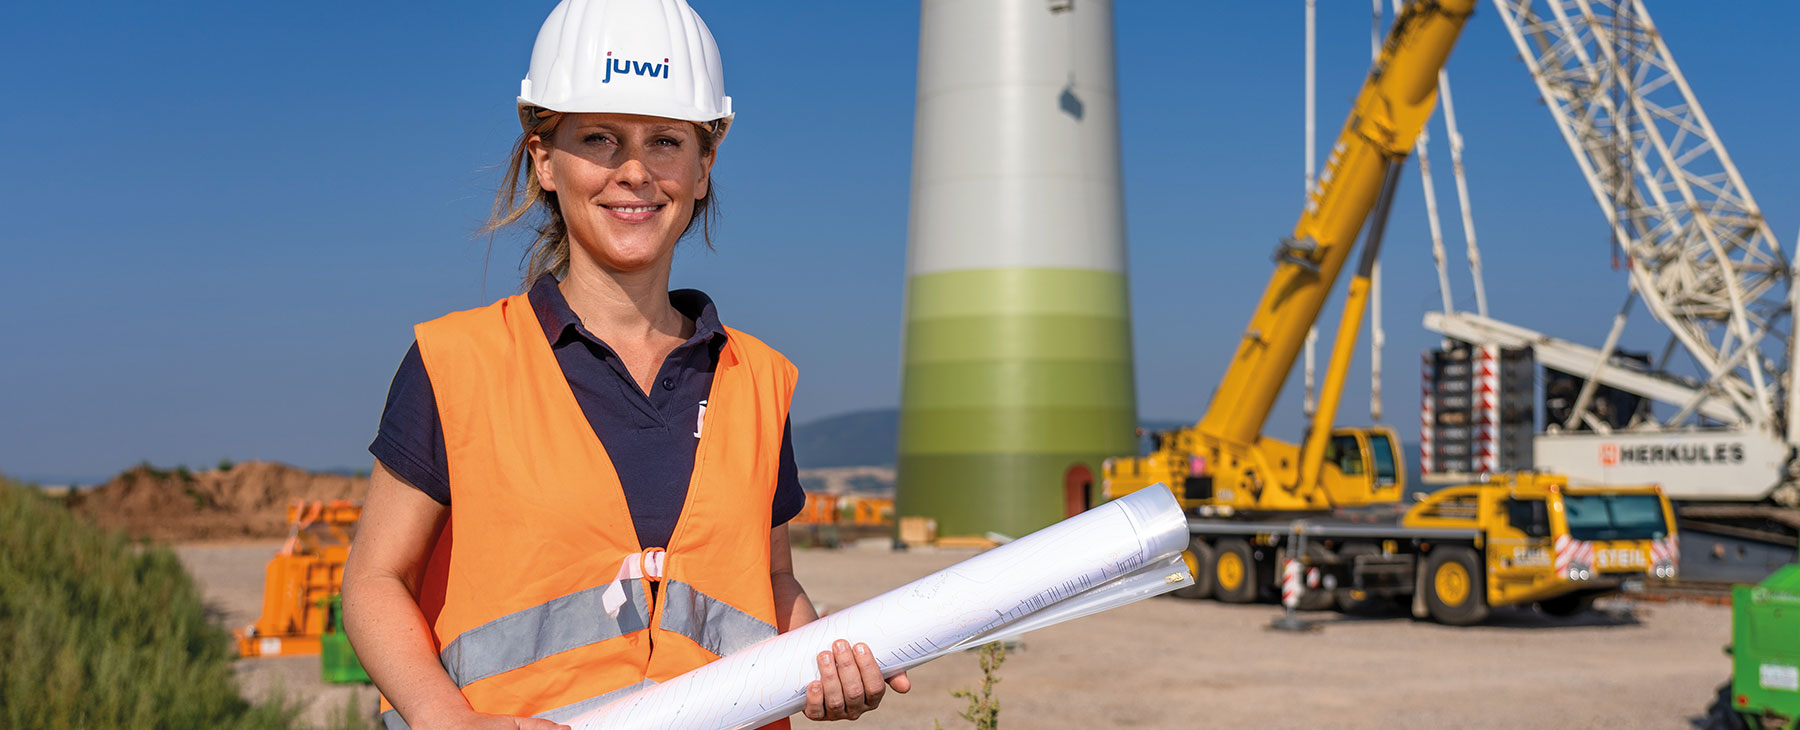 juwi a team of qualified experts in wind energy